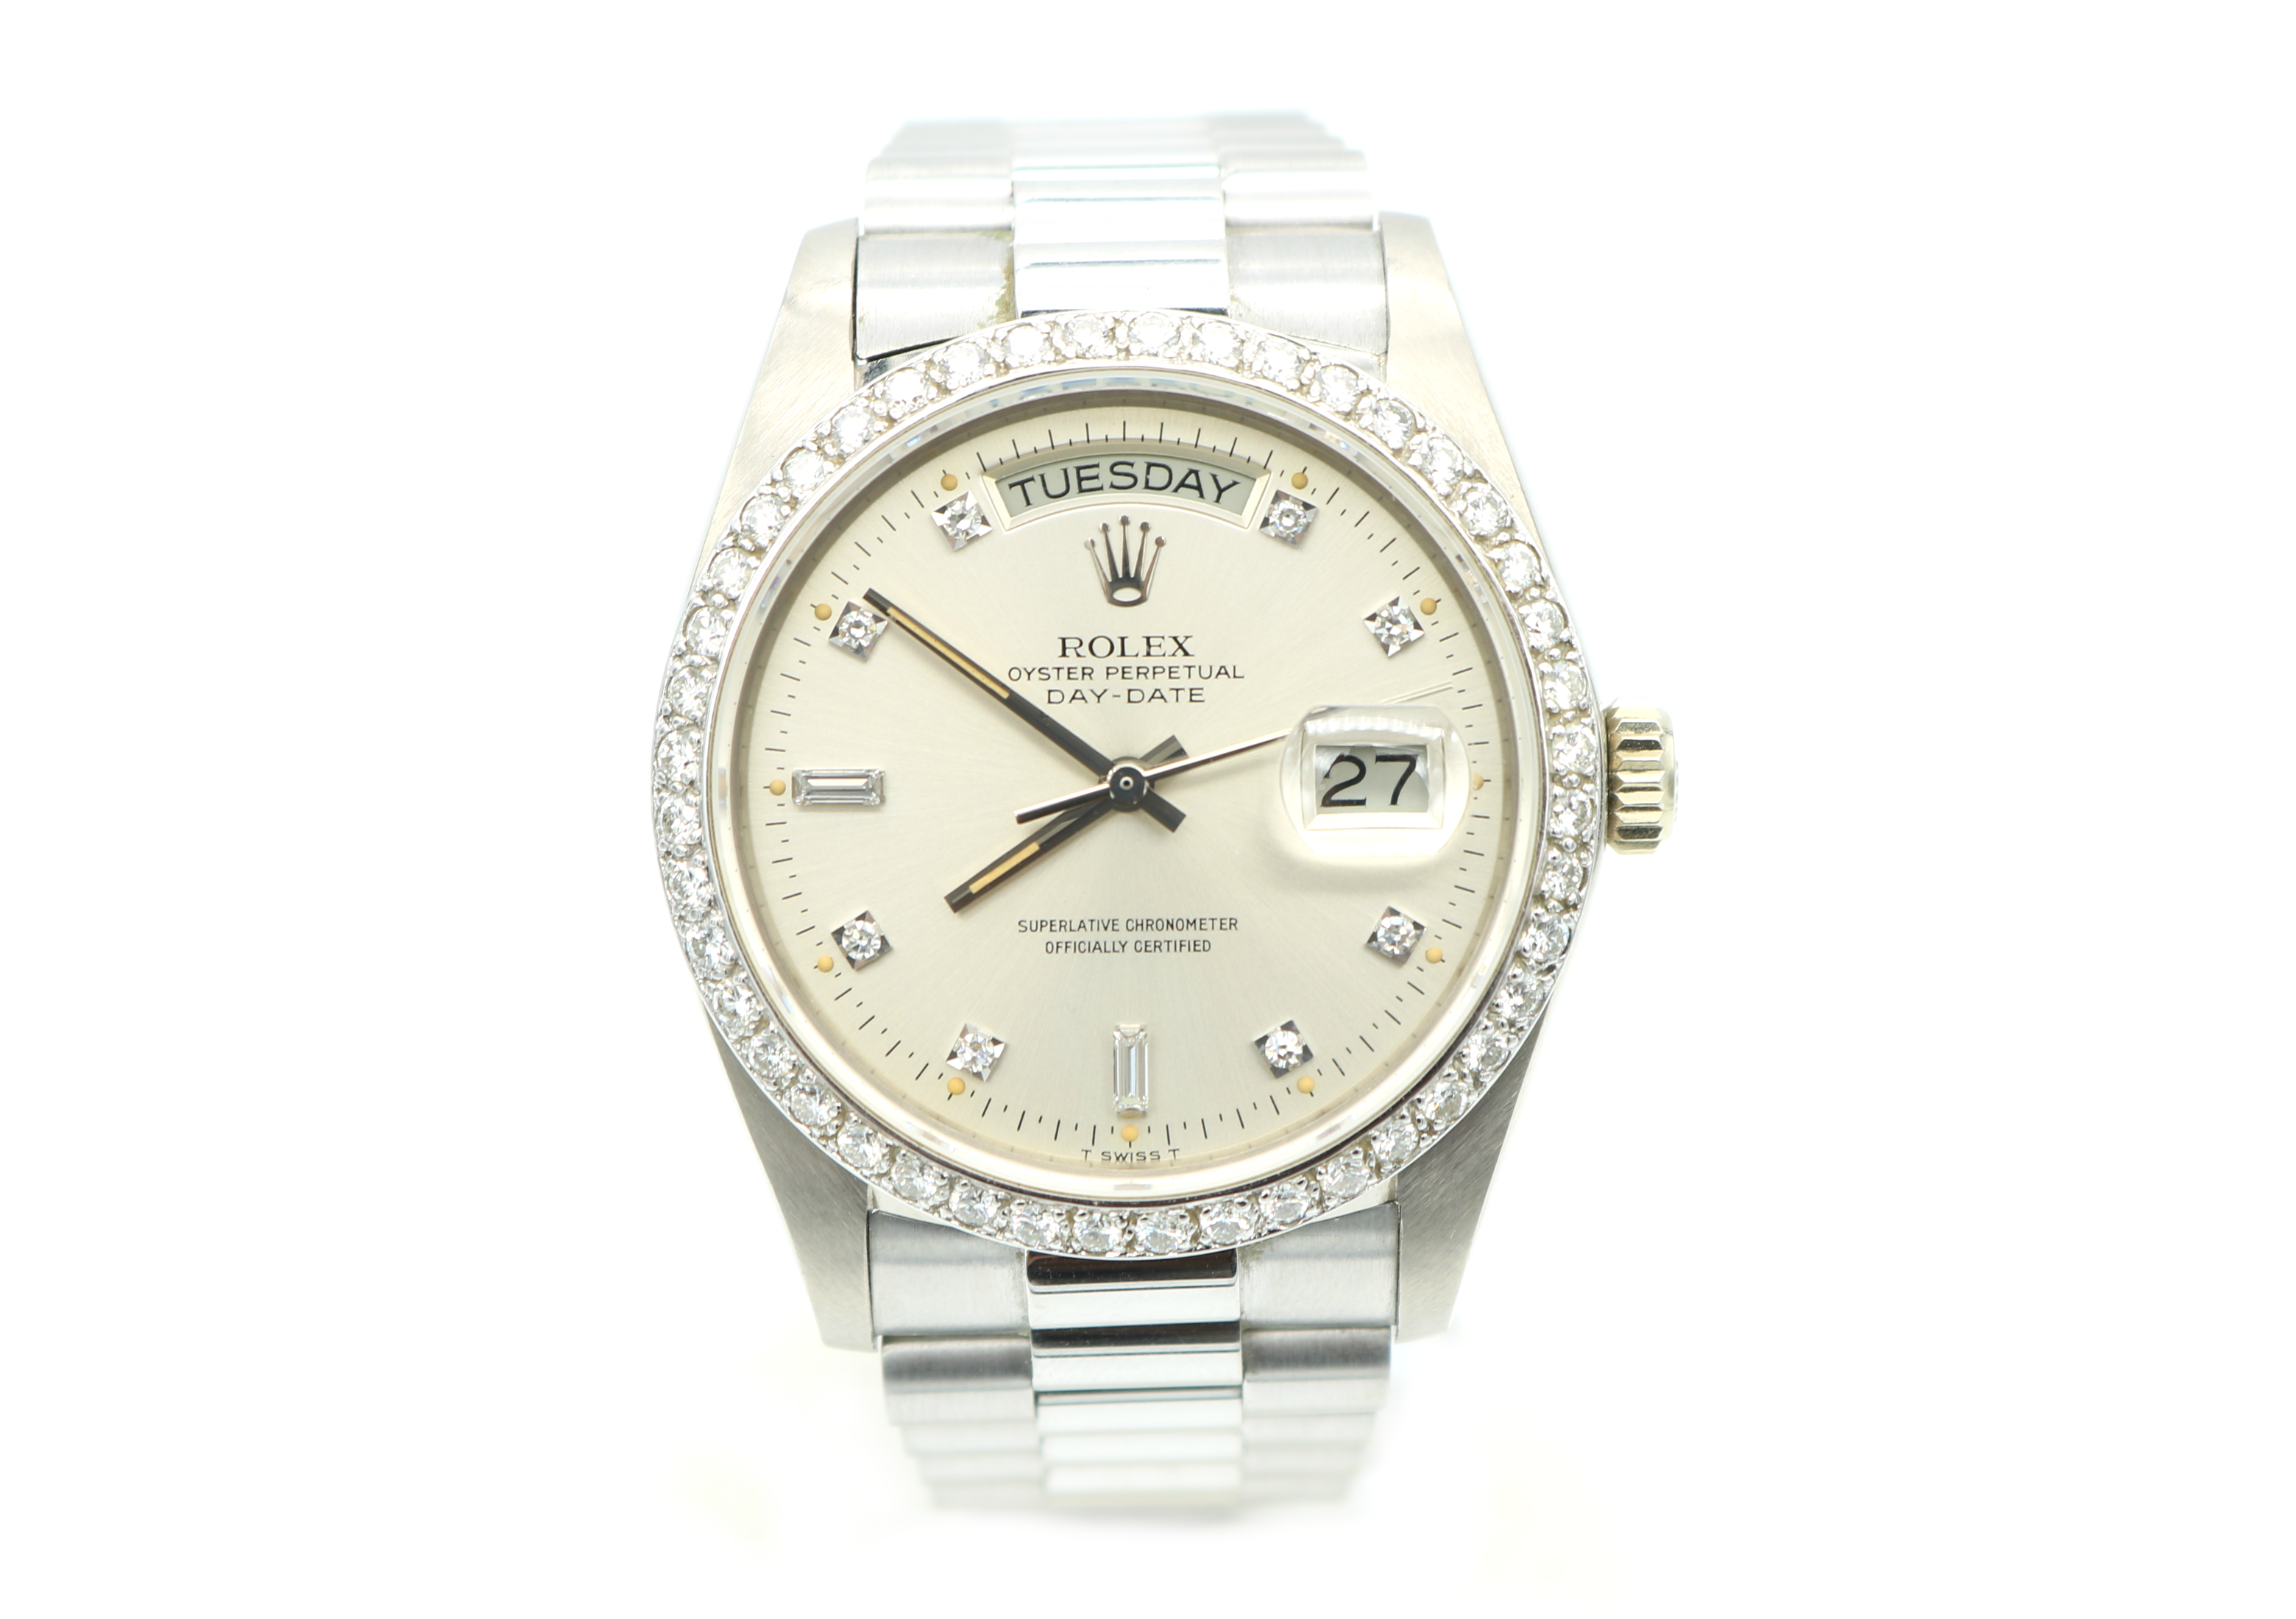 wristwatch gold hour white gents watch day clock hand ebay watches second dial o silver display diamonds baguette rolex collectors and markers itm at date diamond